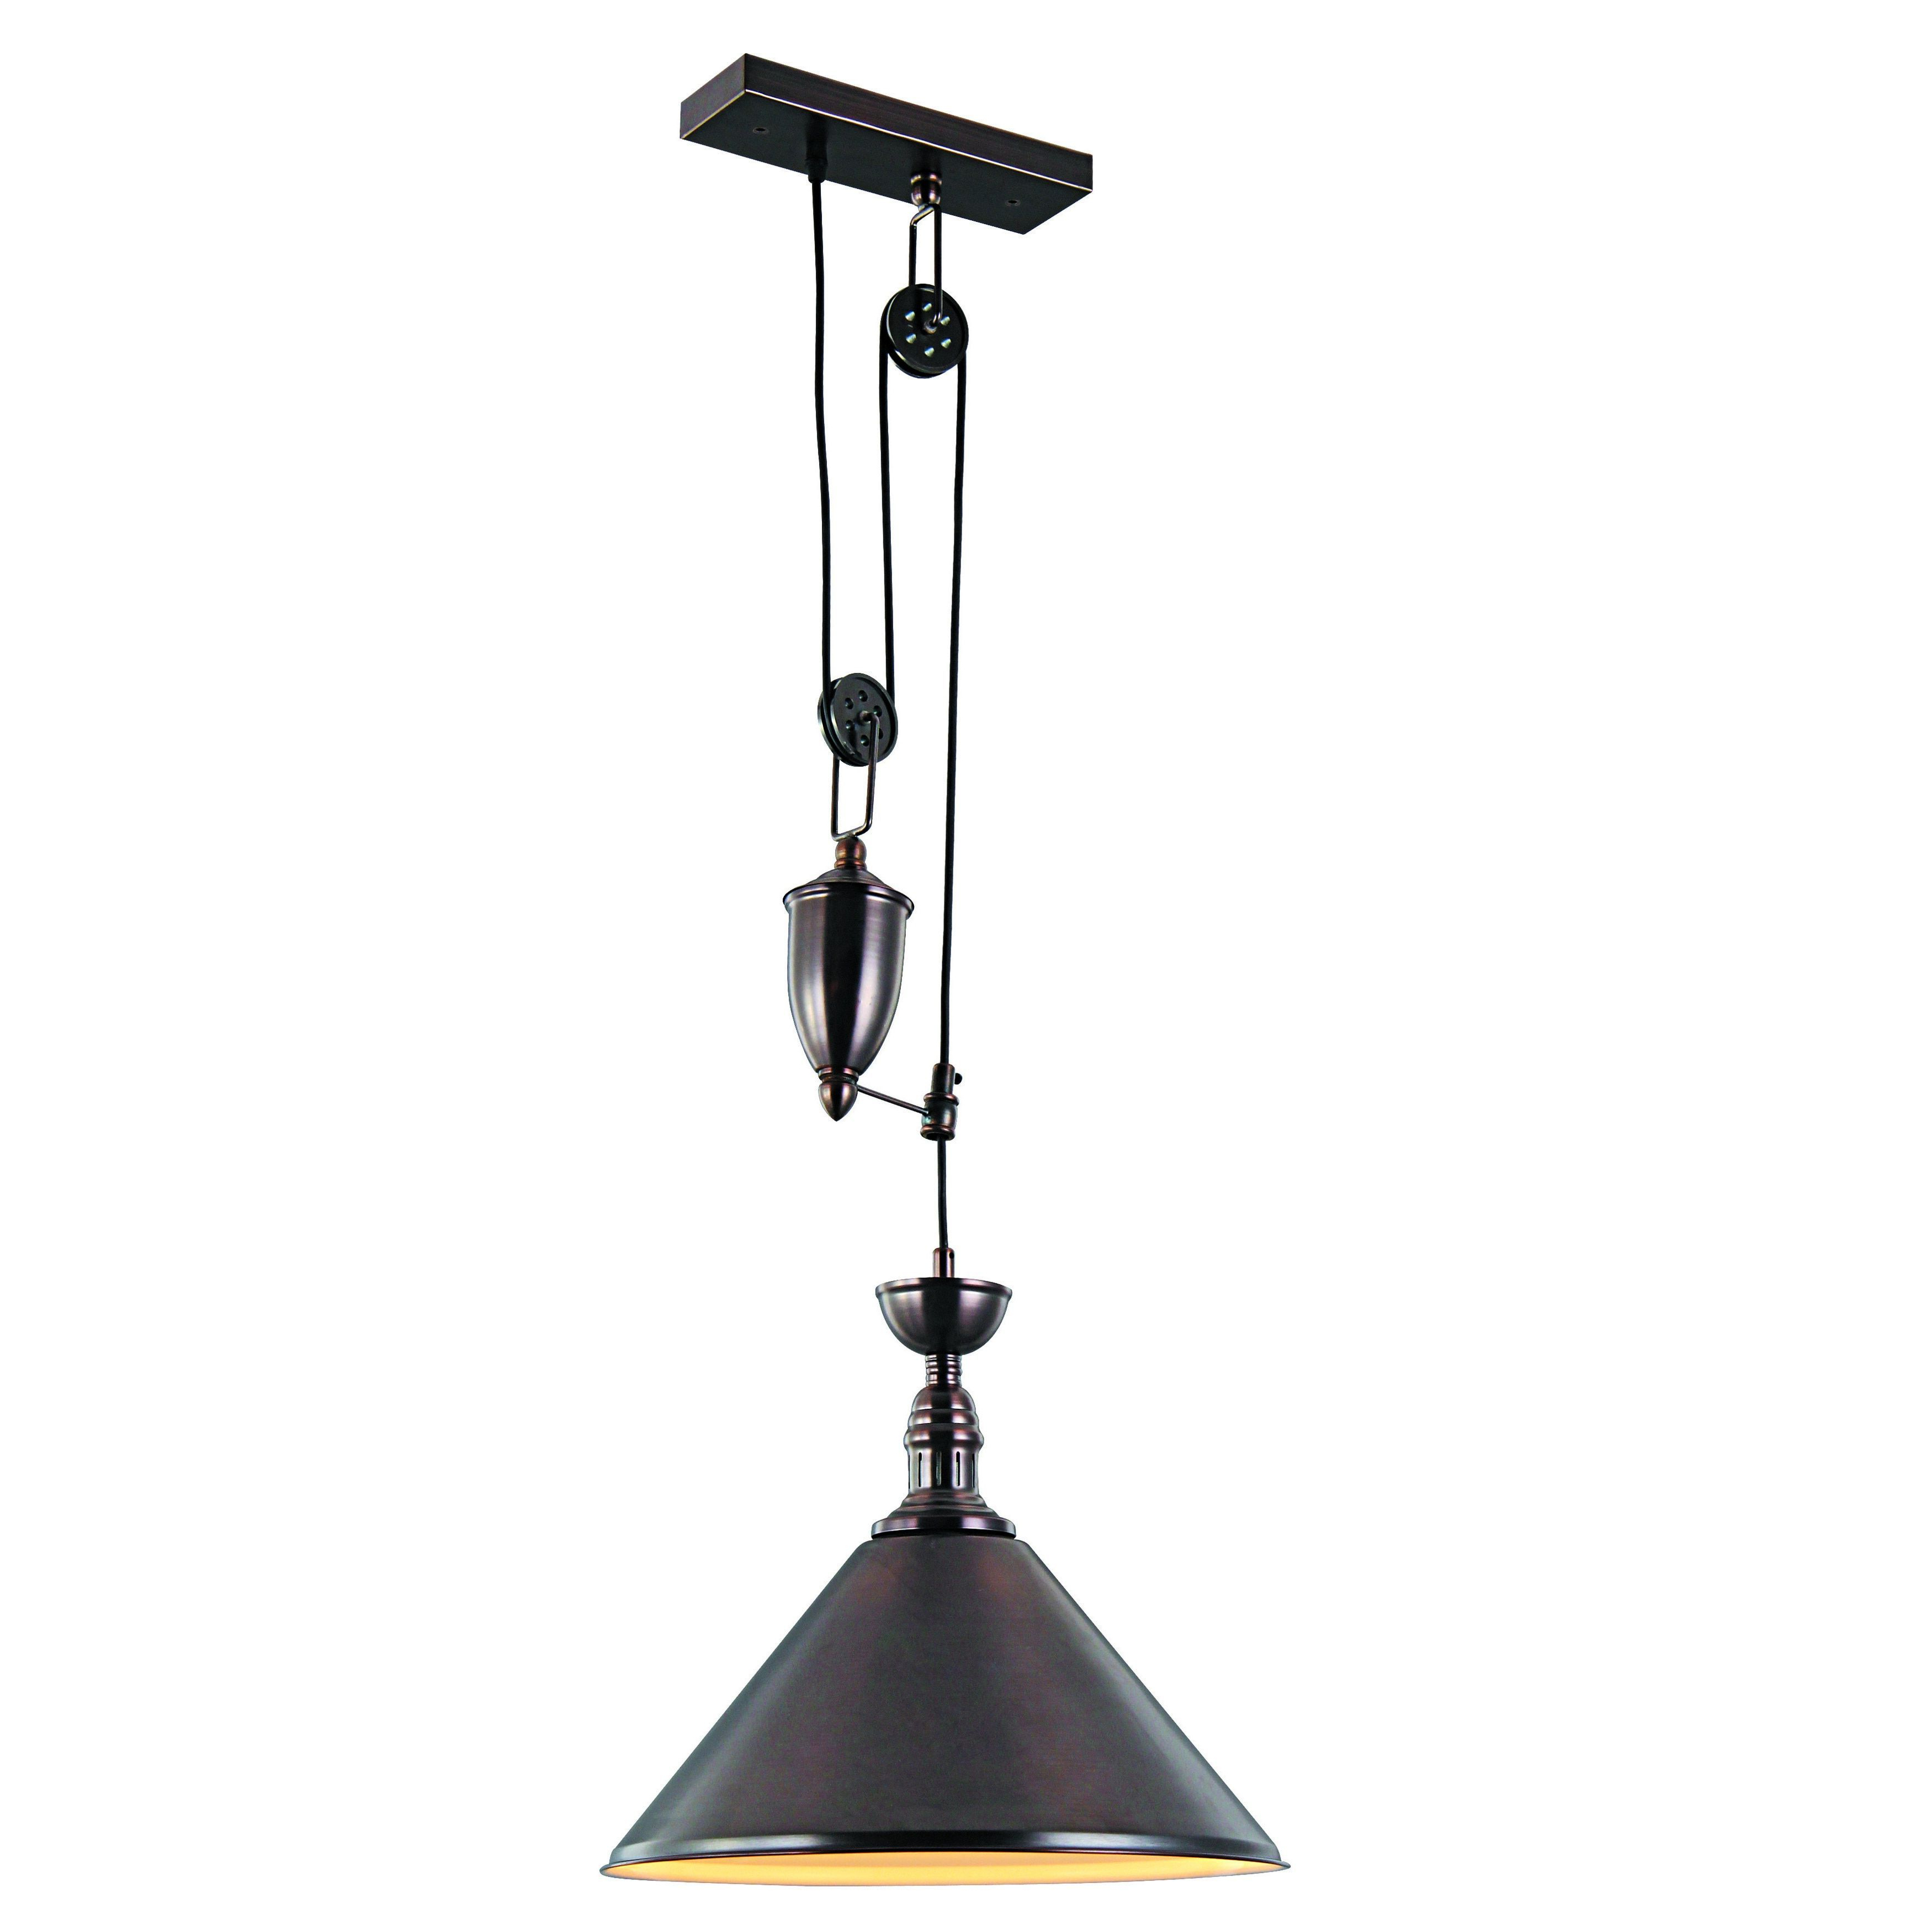 Euclid 2 Light Kitchen Island Linear Pendants For Best And Newest Elegant Lighting Industrial Collection Pendant Lamp With (Gallery 15 of 20)